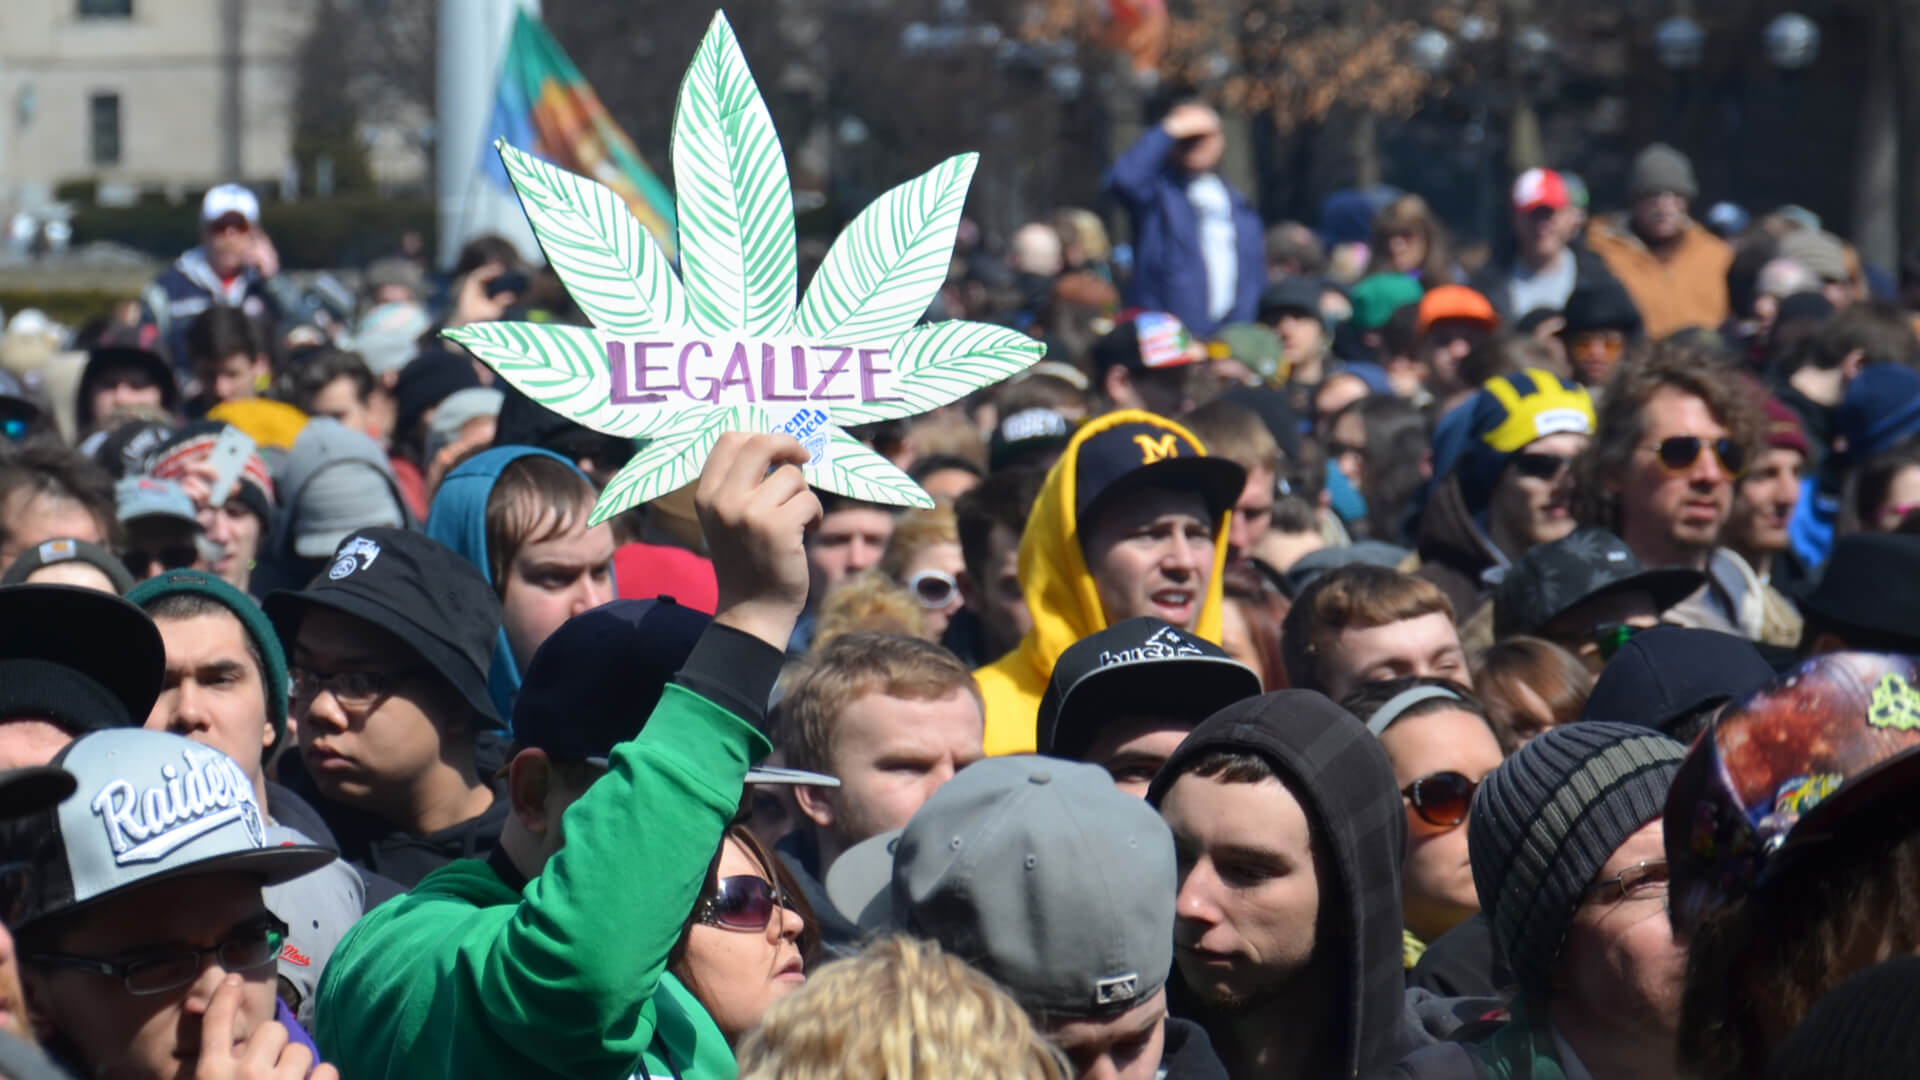 activists holding a rally for legalization in Ann Arbor, Michigan